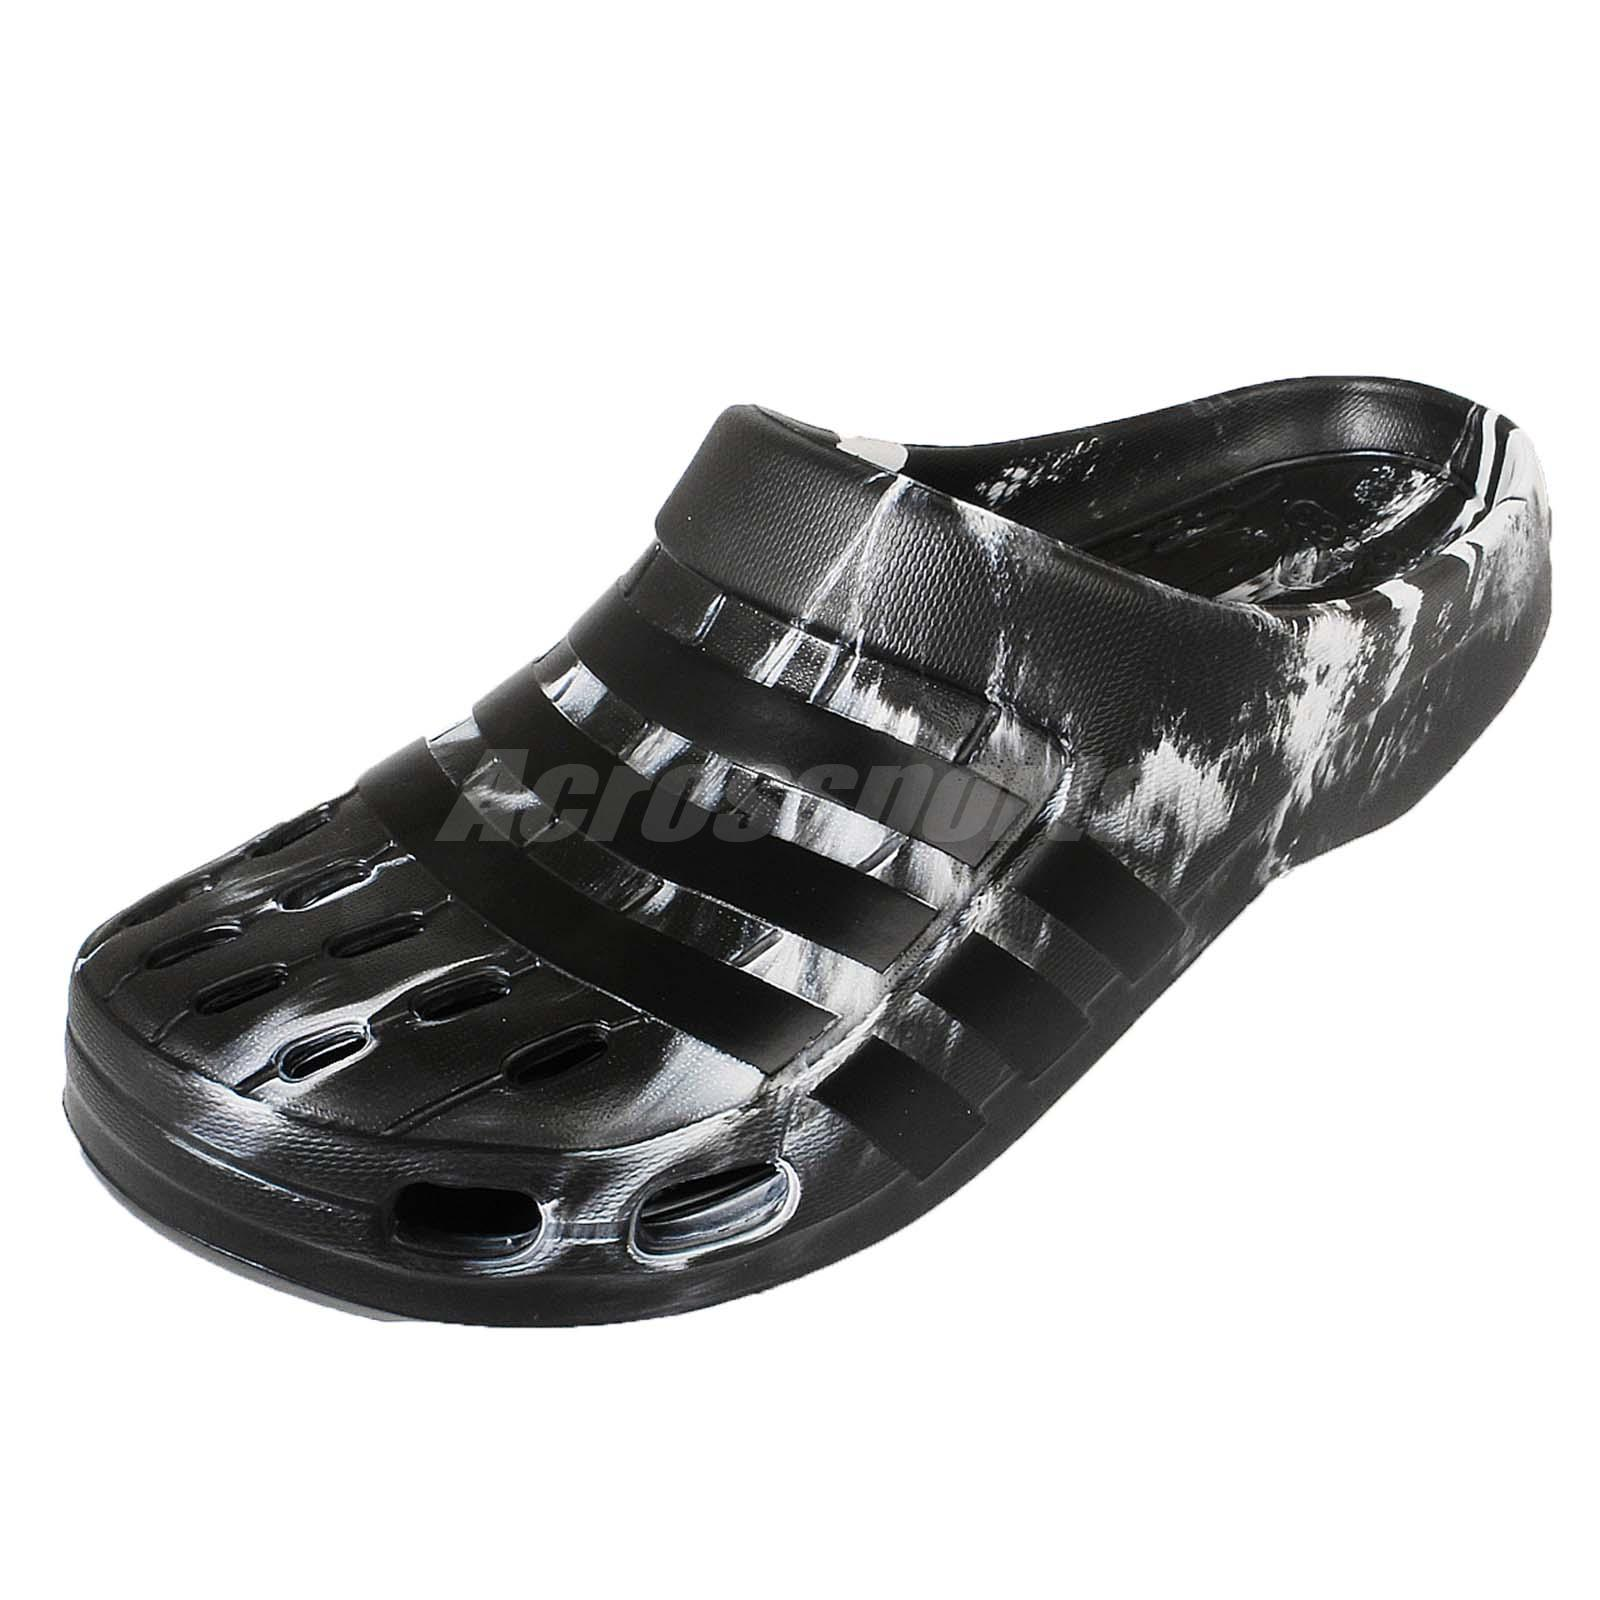 Buy adidas slip on slippers   OFF62% Discounted 9534d955c